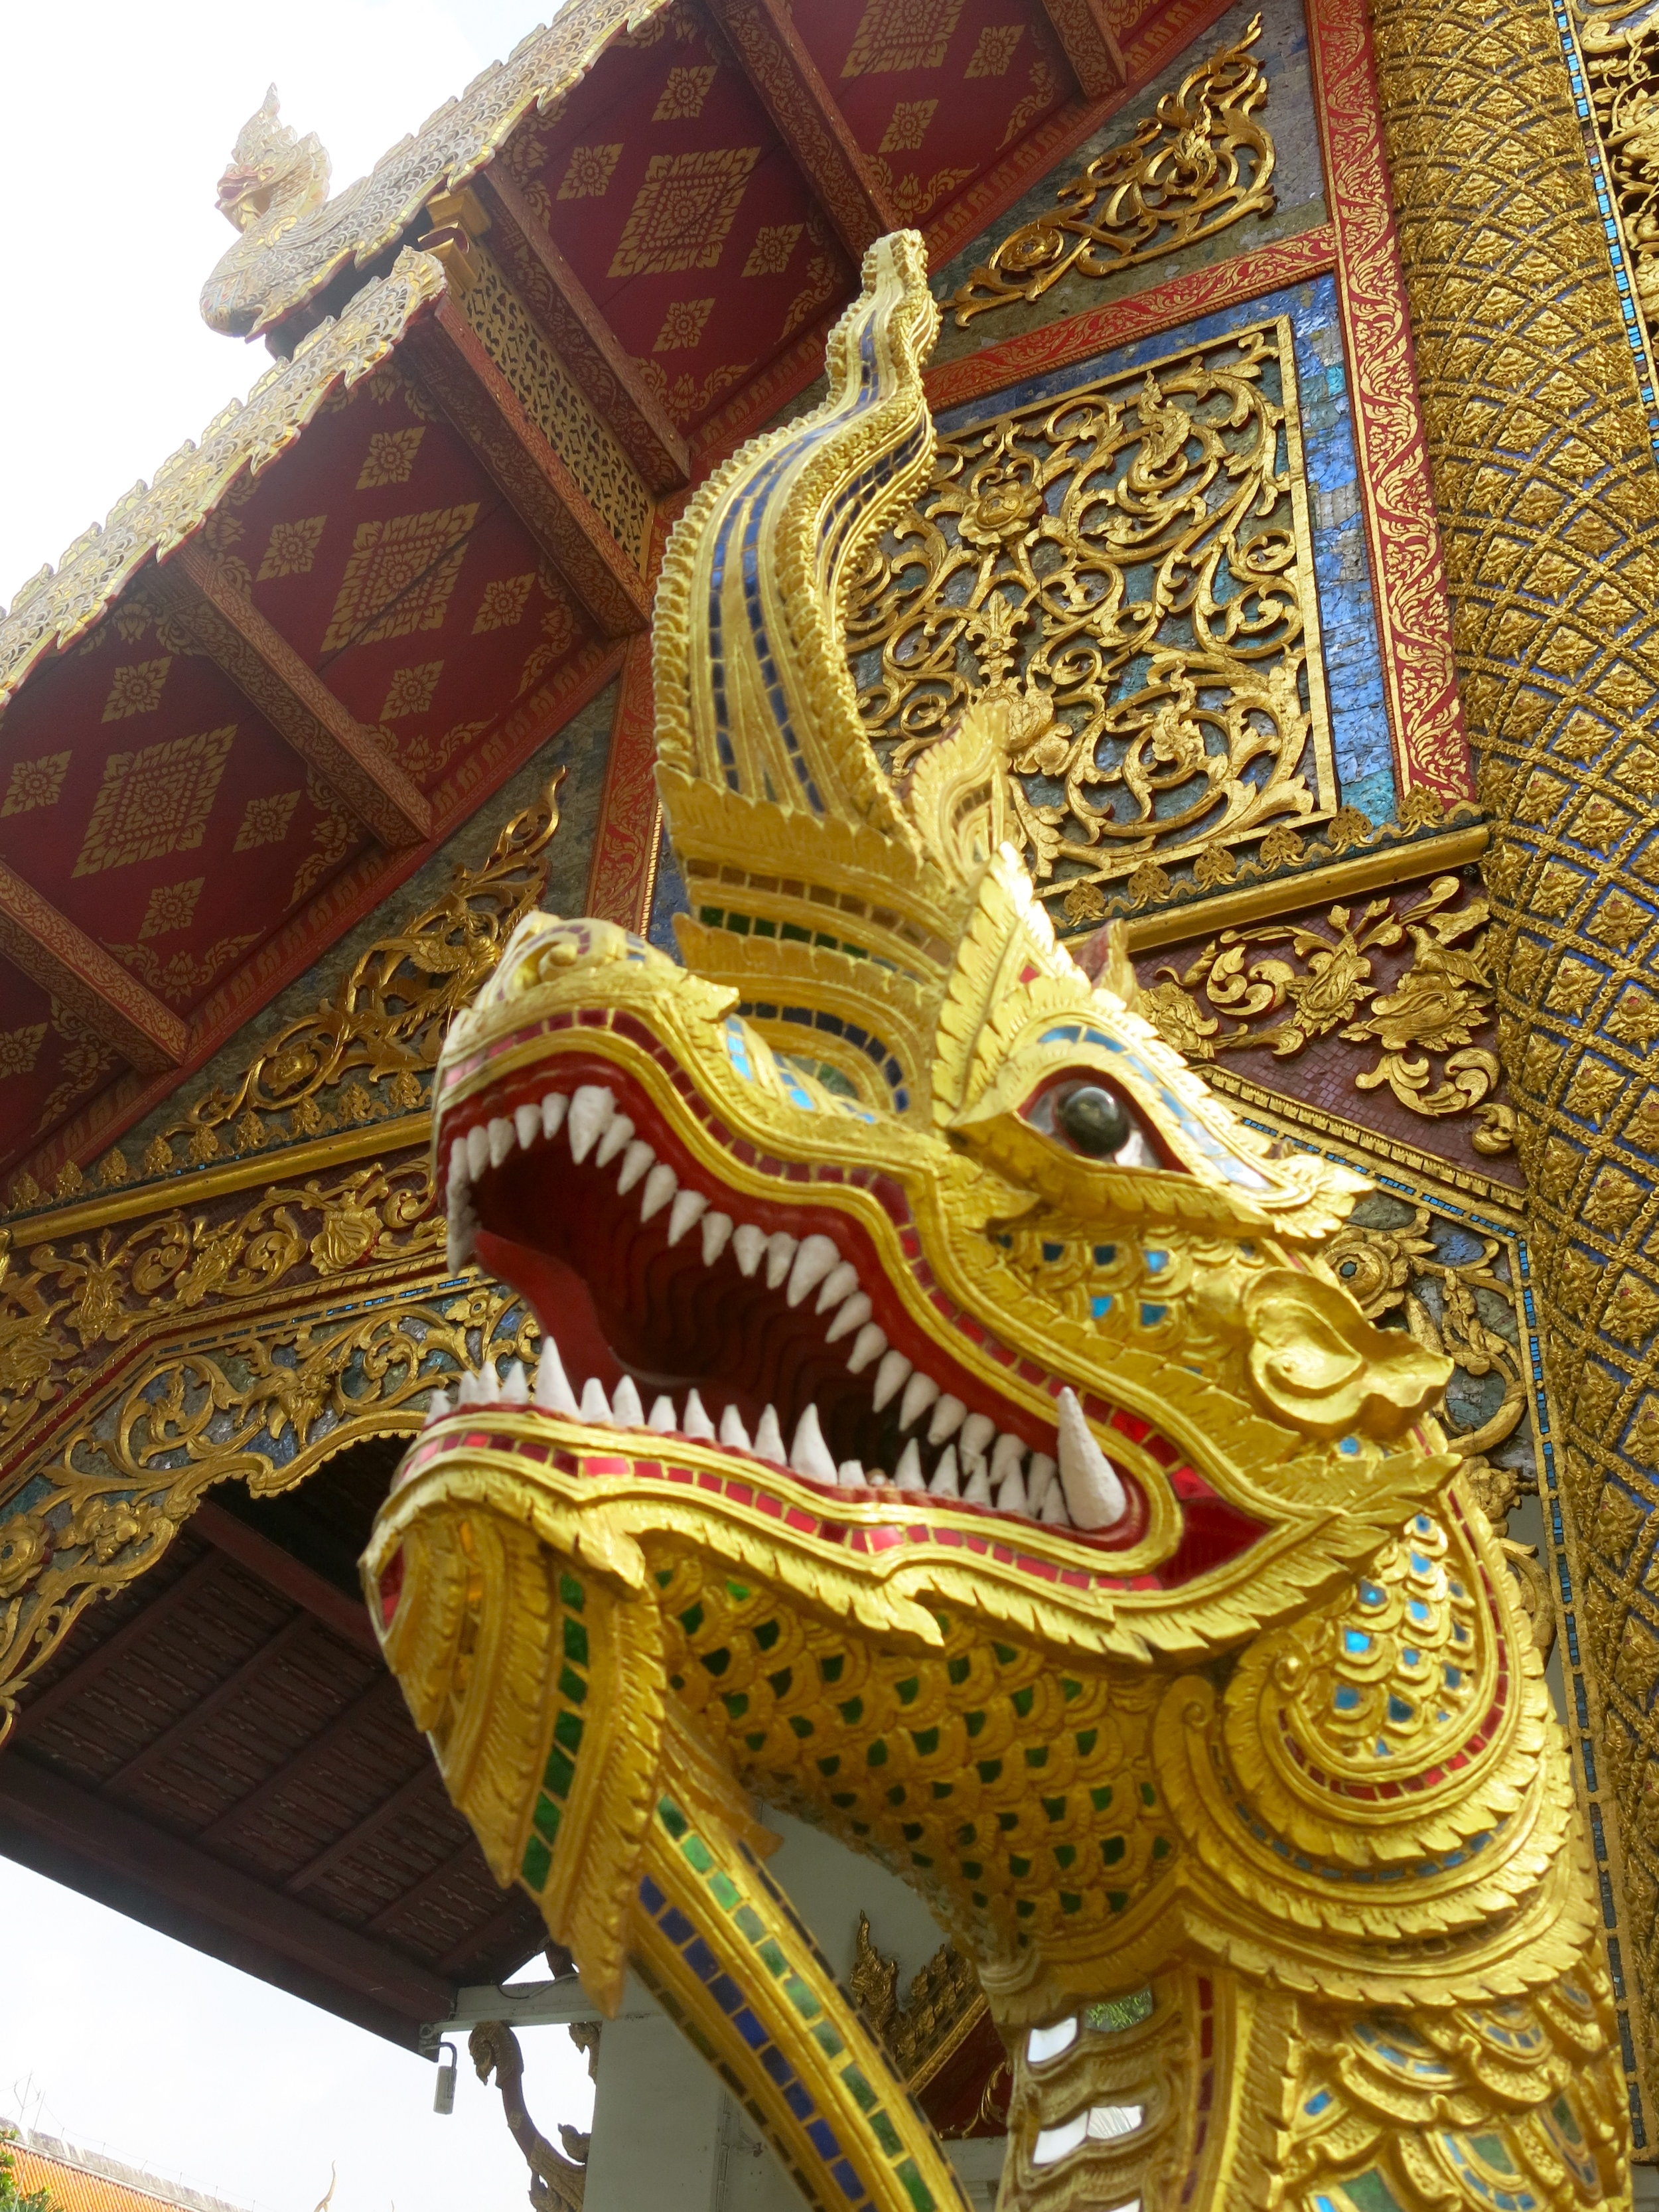 A golden Naga, a dragon-like figures guarding Buddhist temples